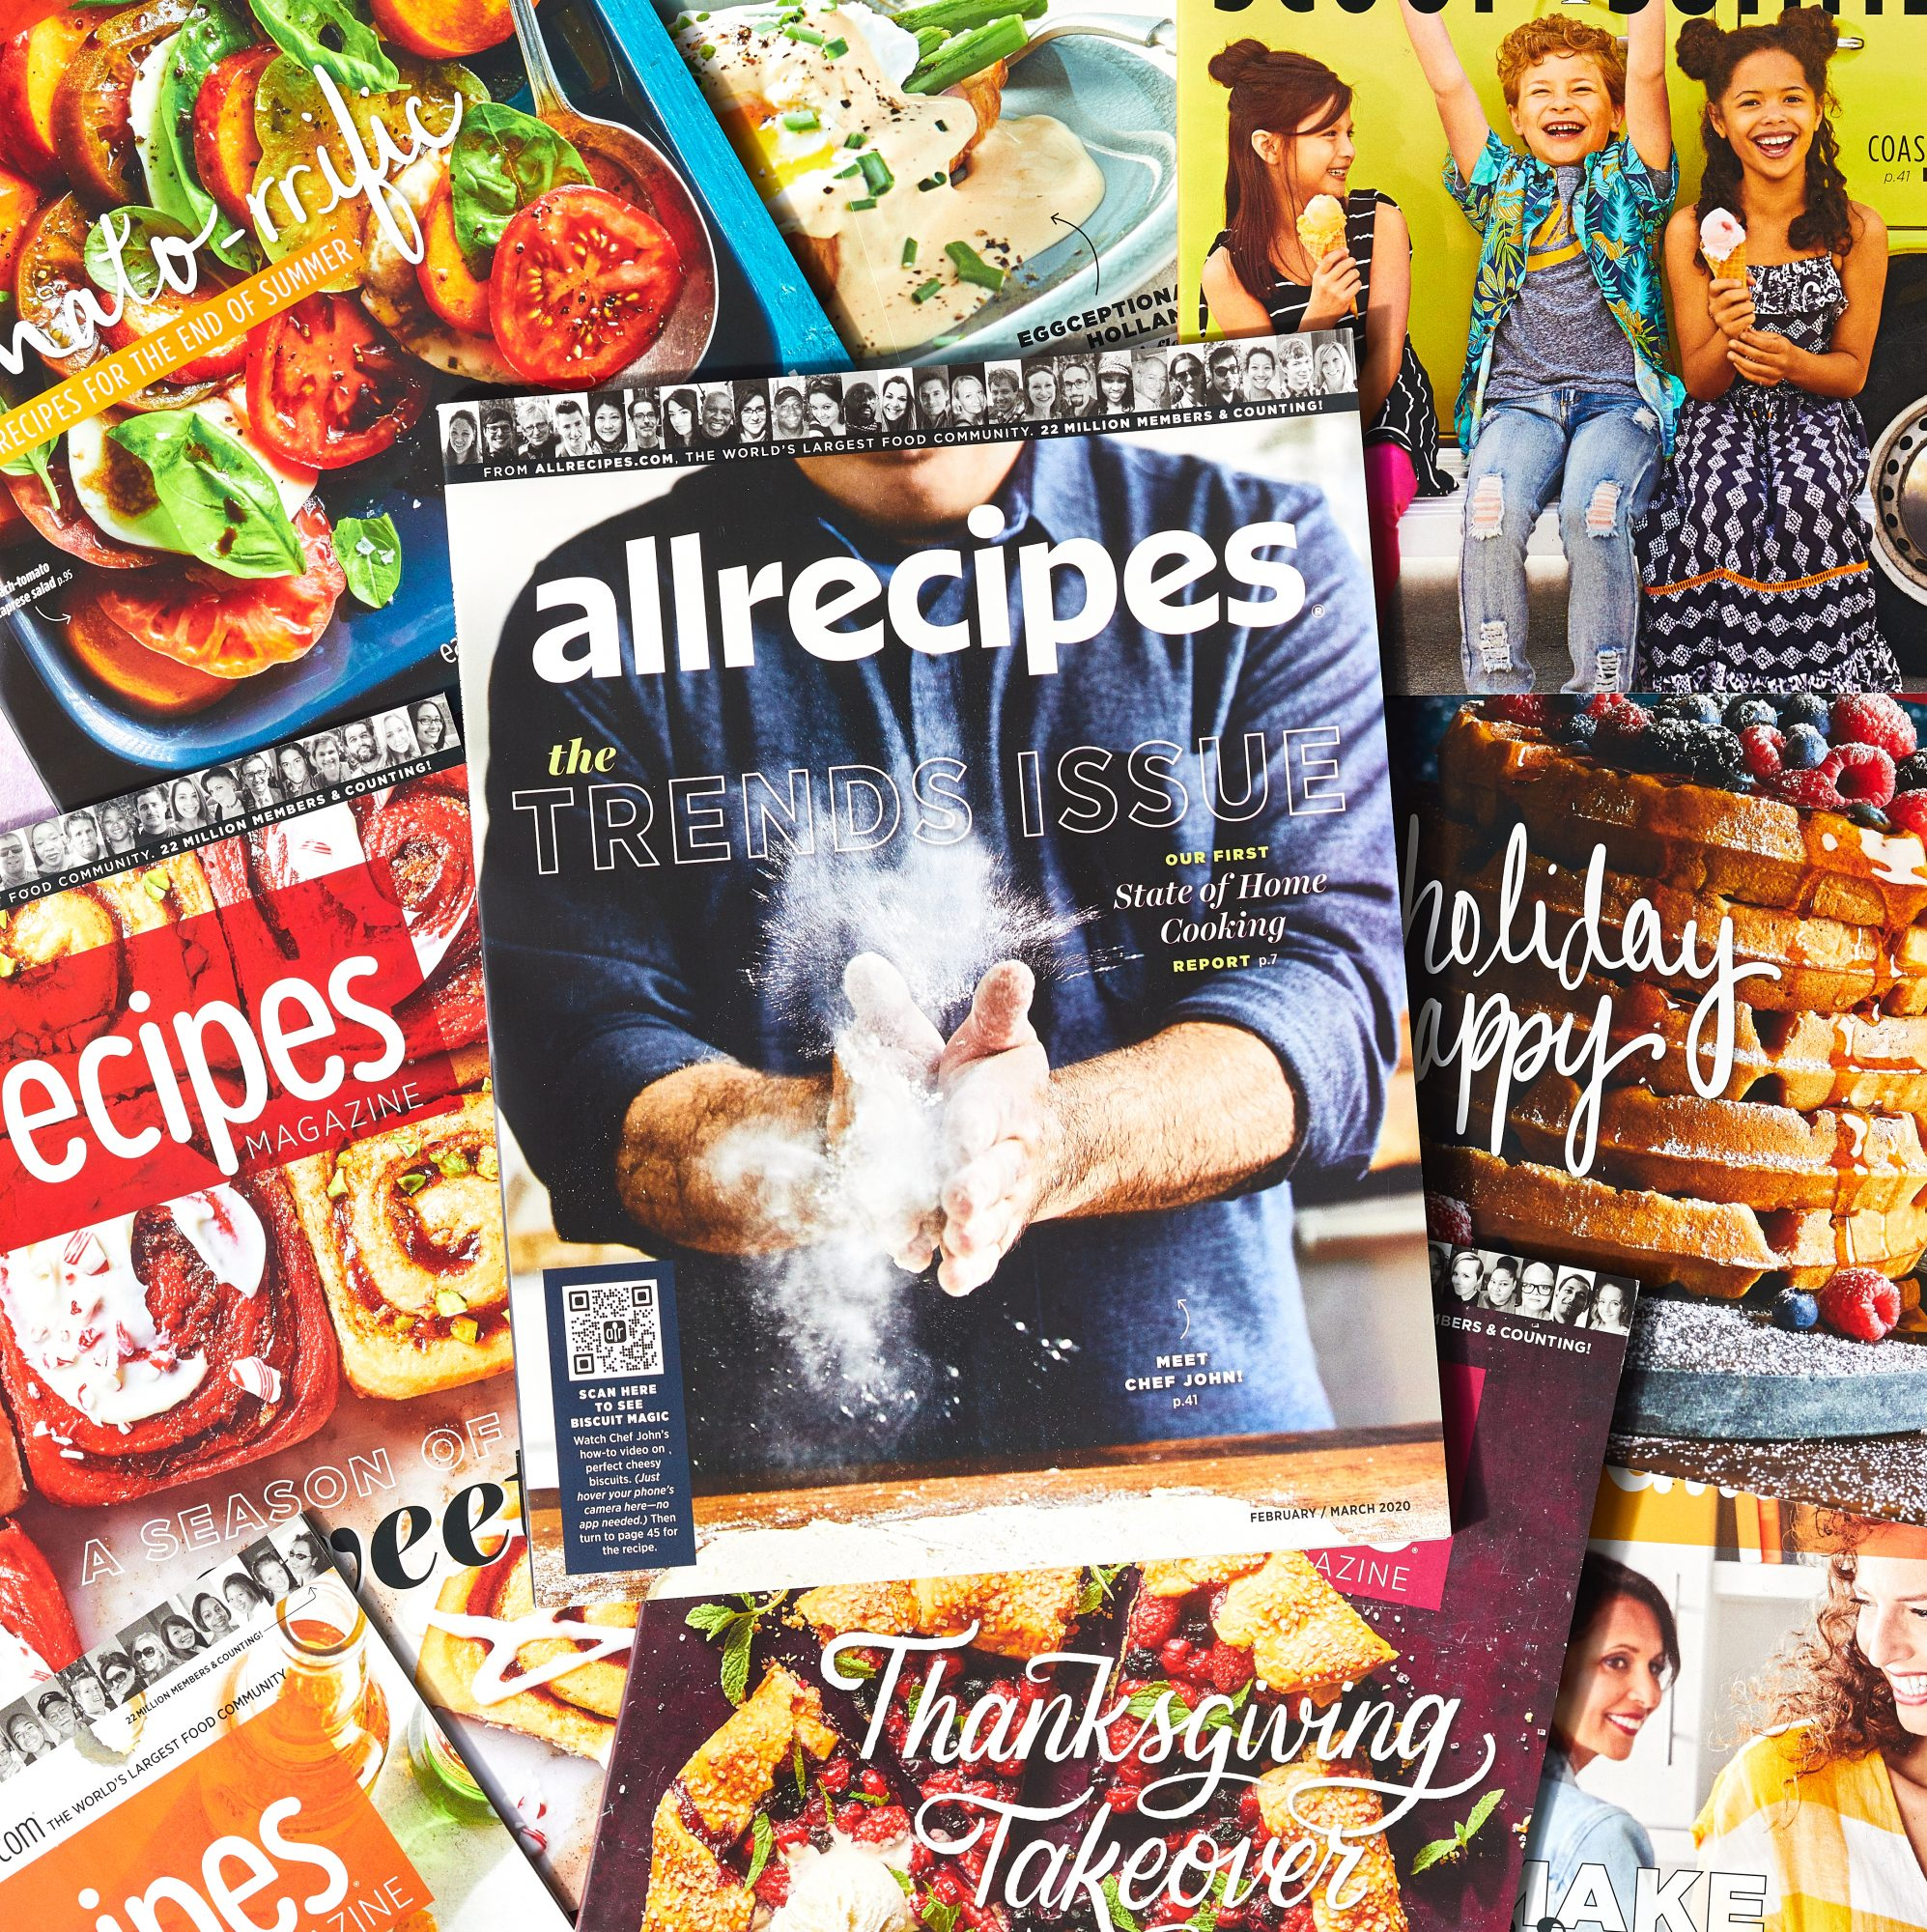 allrecipes magazine covers